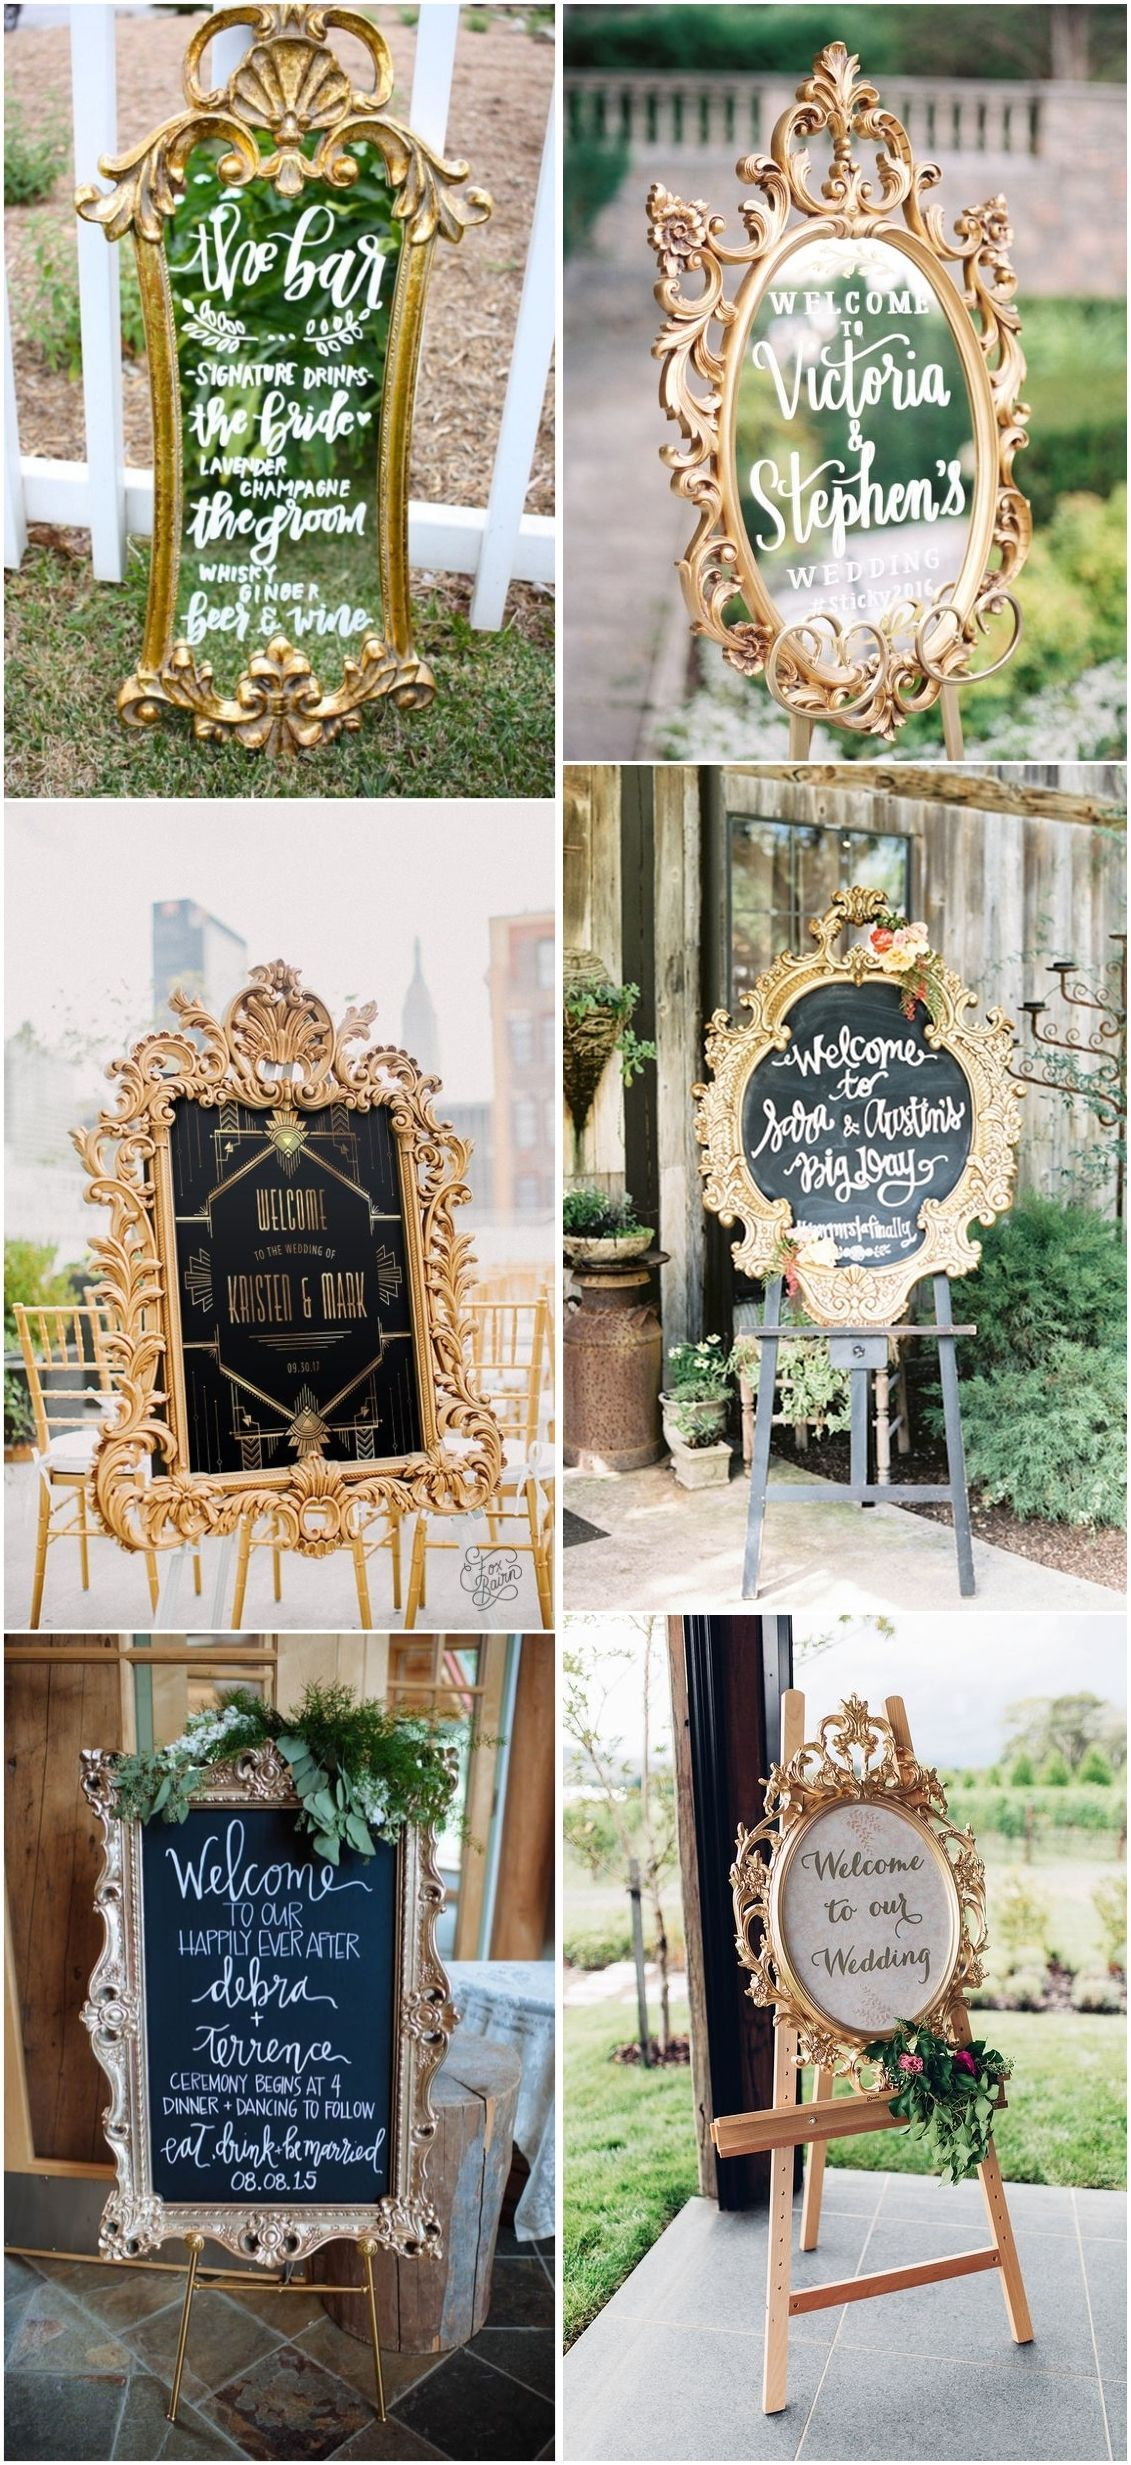 Wedding decorations wedding reception ideas november 2018 unique wedding signs weddings weddingideas vintage